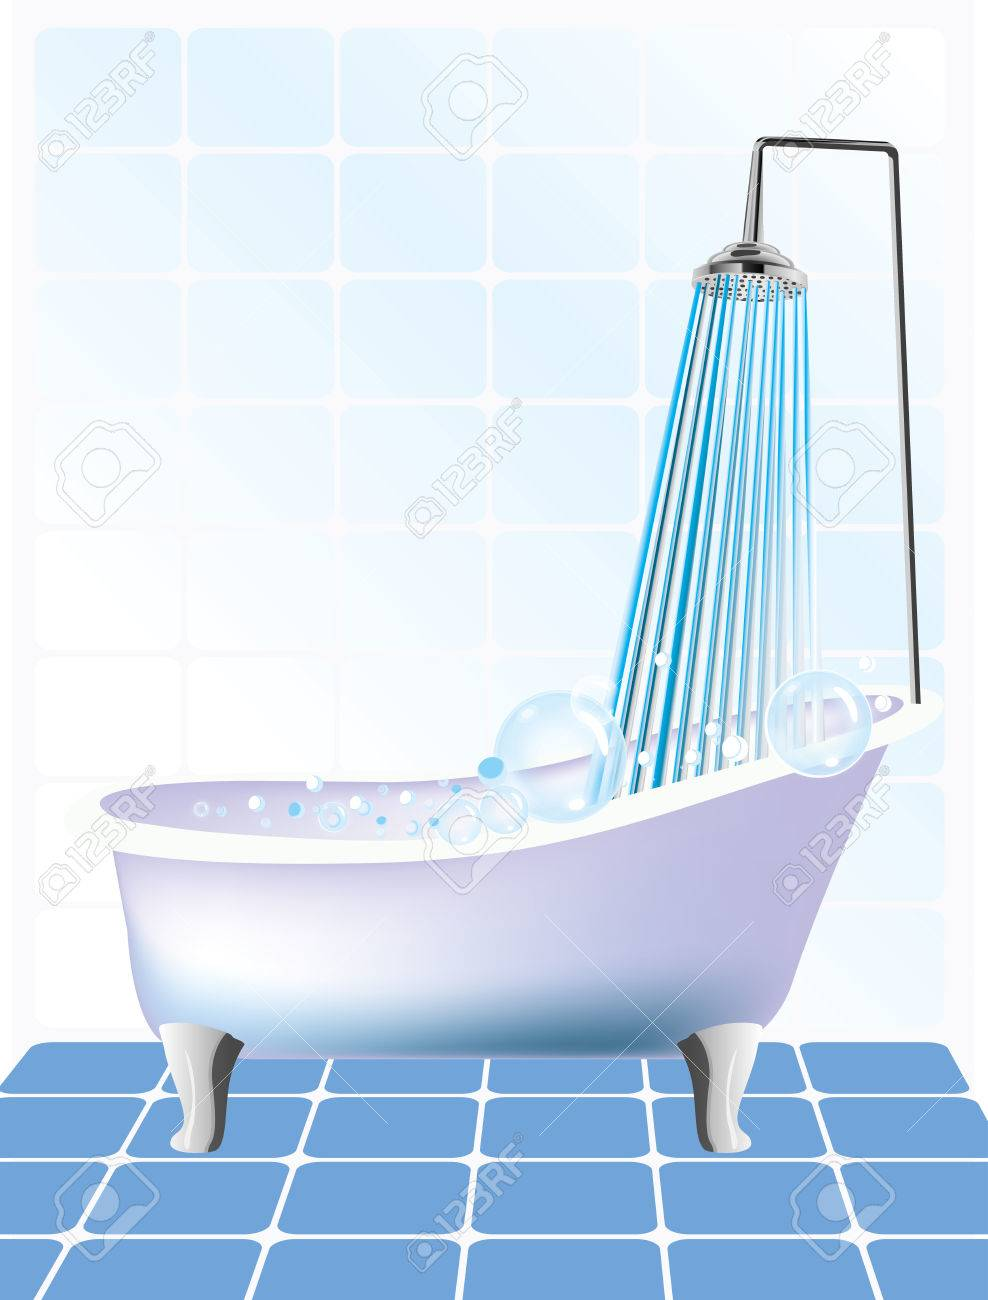 Vector Illustration Of Shower And Bathtub Royalty Free Cliparts ...